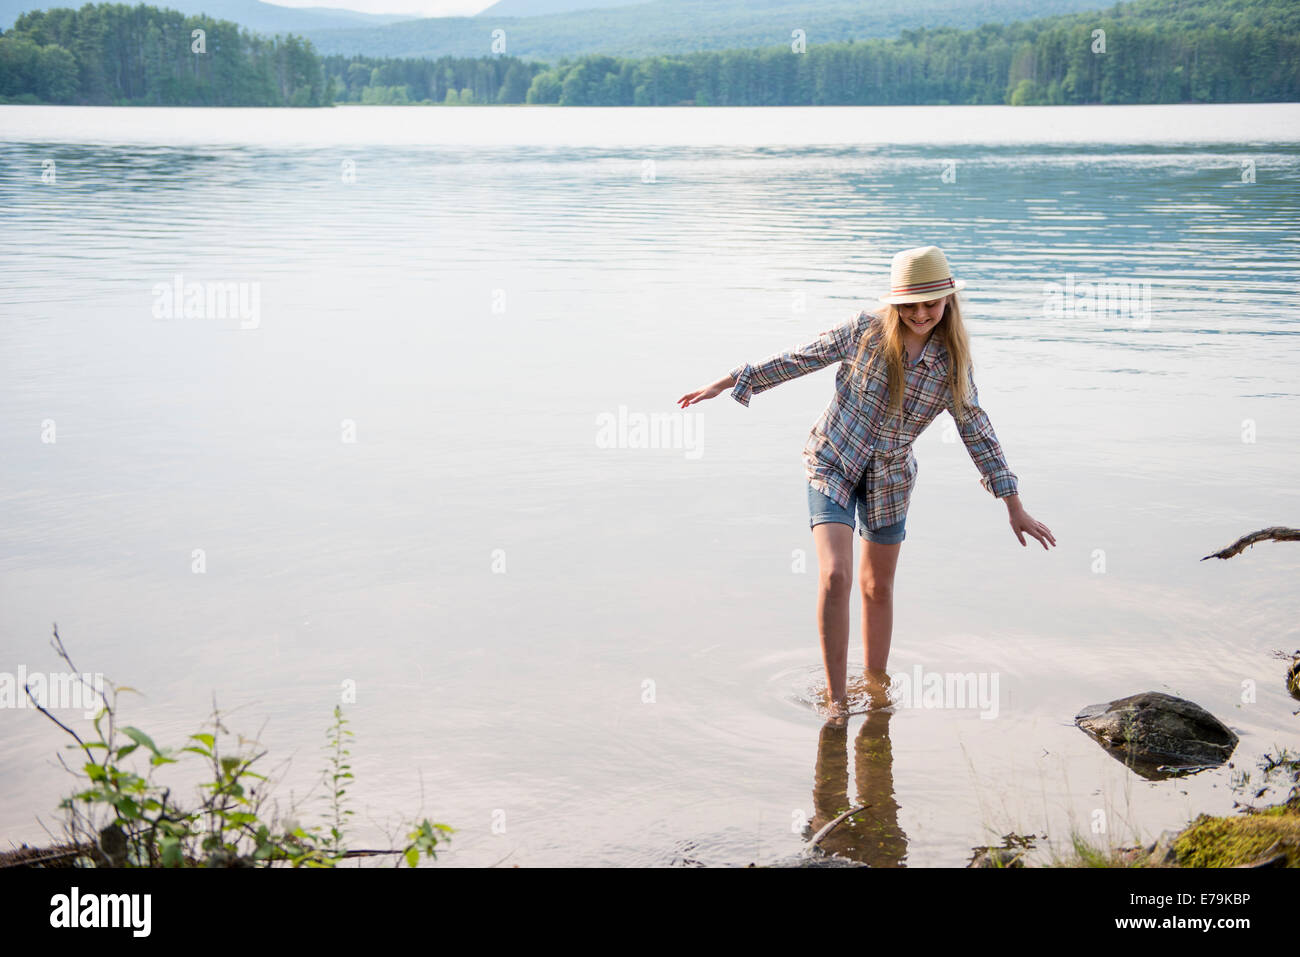 A young girl in a straw hat and shorts paddling in the shallow waters of a lake. - Stock Image